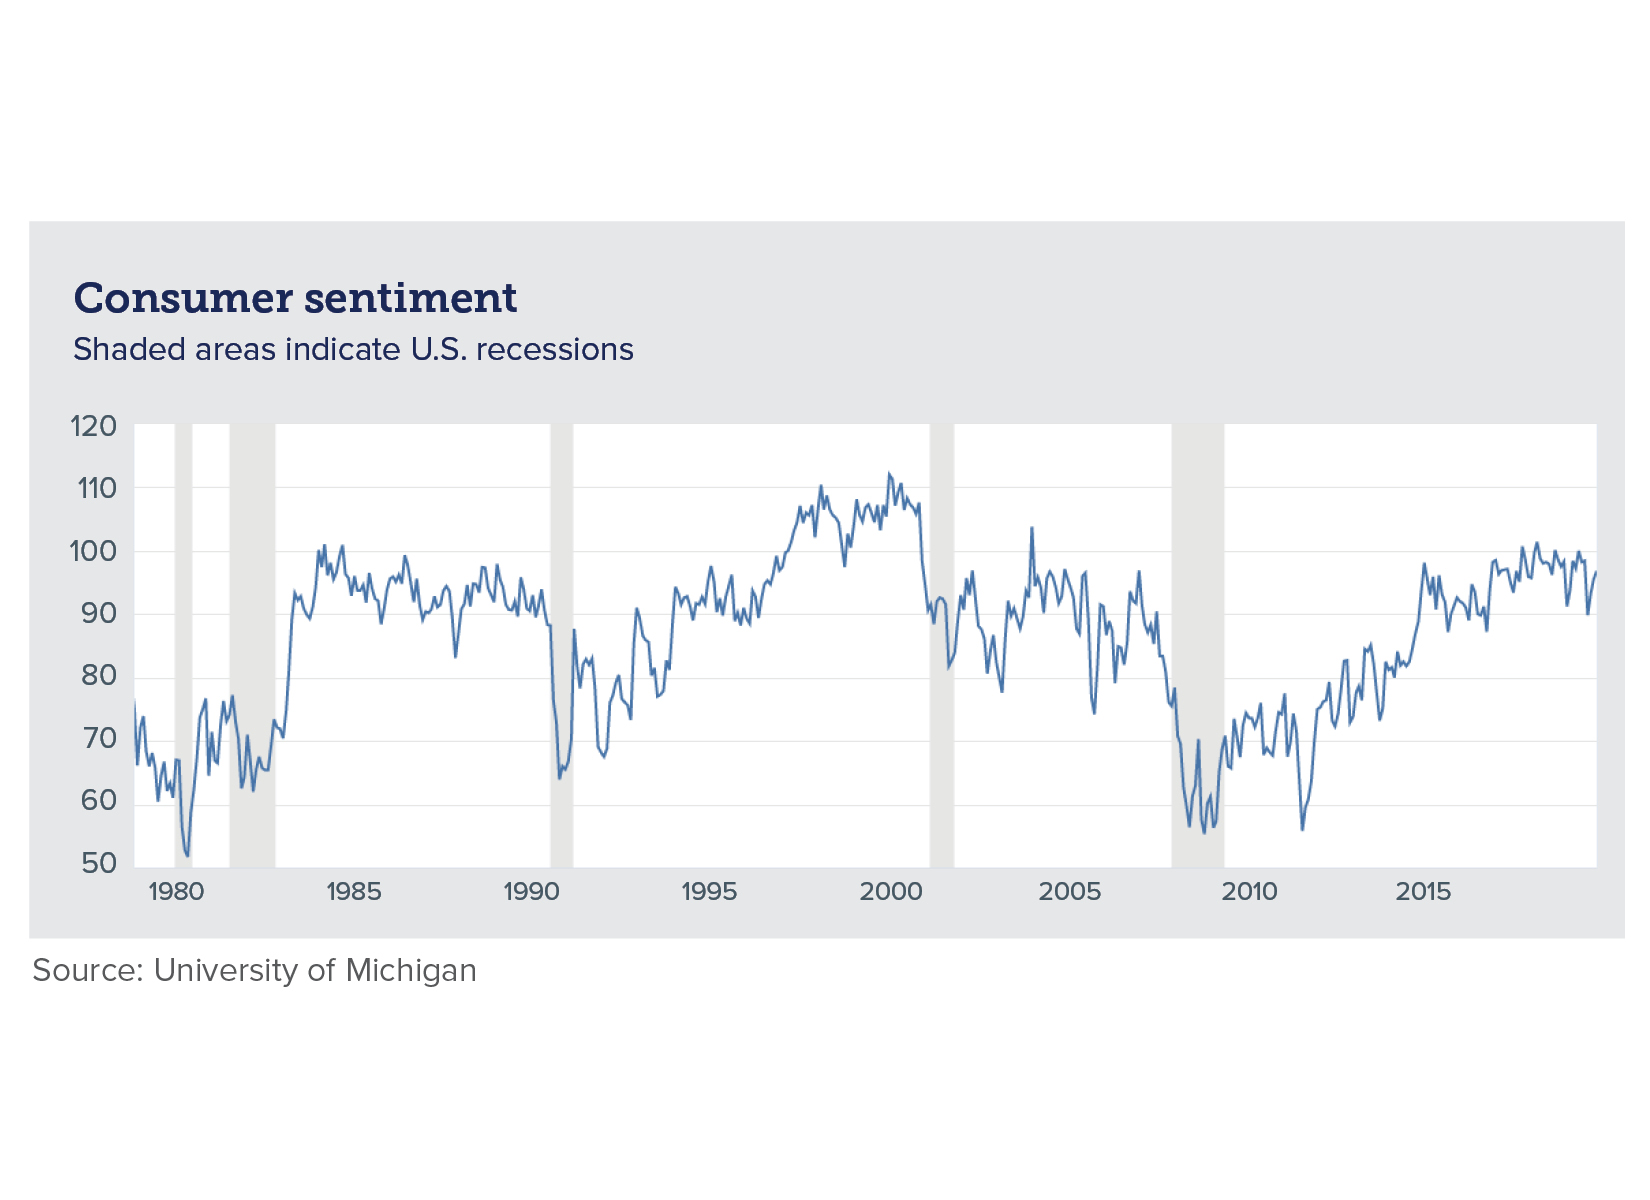 Chart of consumer sentiment over time